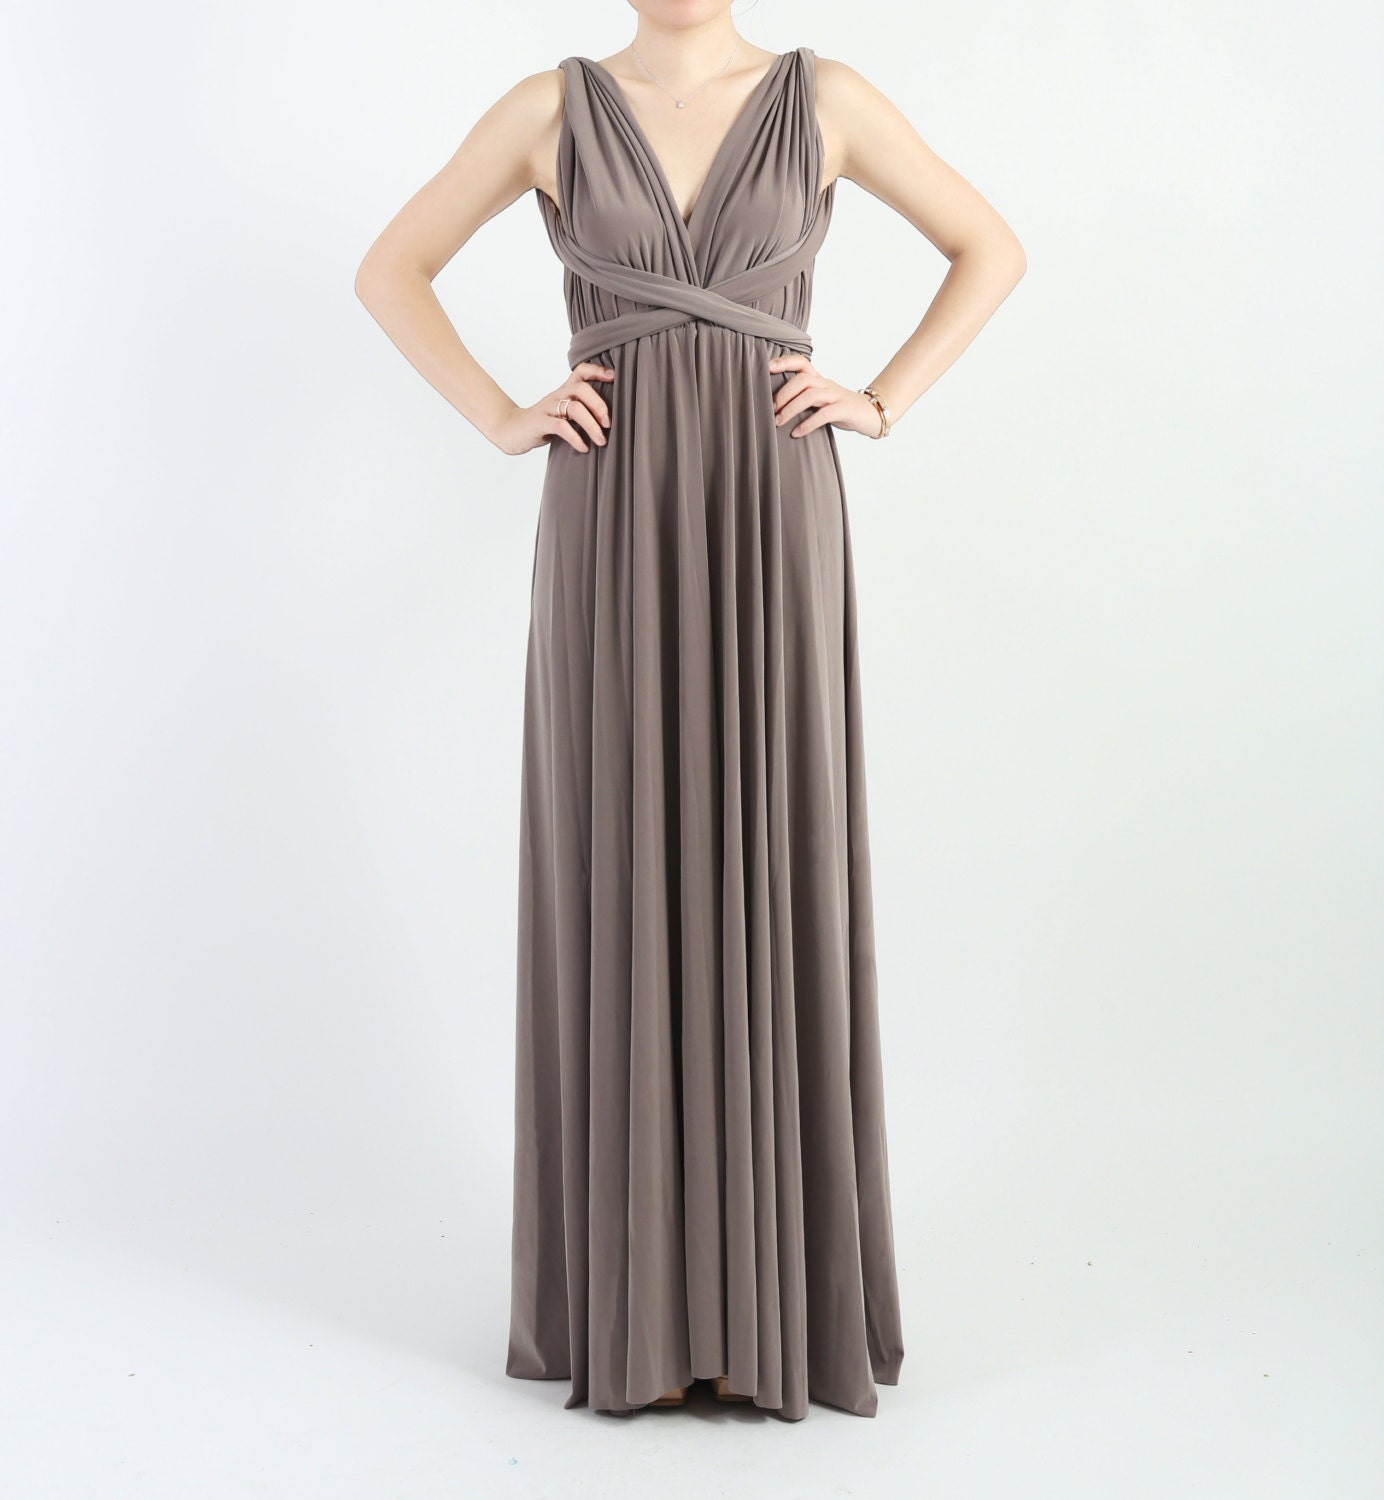 Taupe LONG Floor Length Ball Gown Infinity Dress Convertible   Etsy